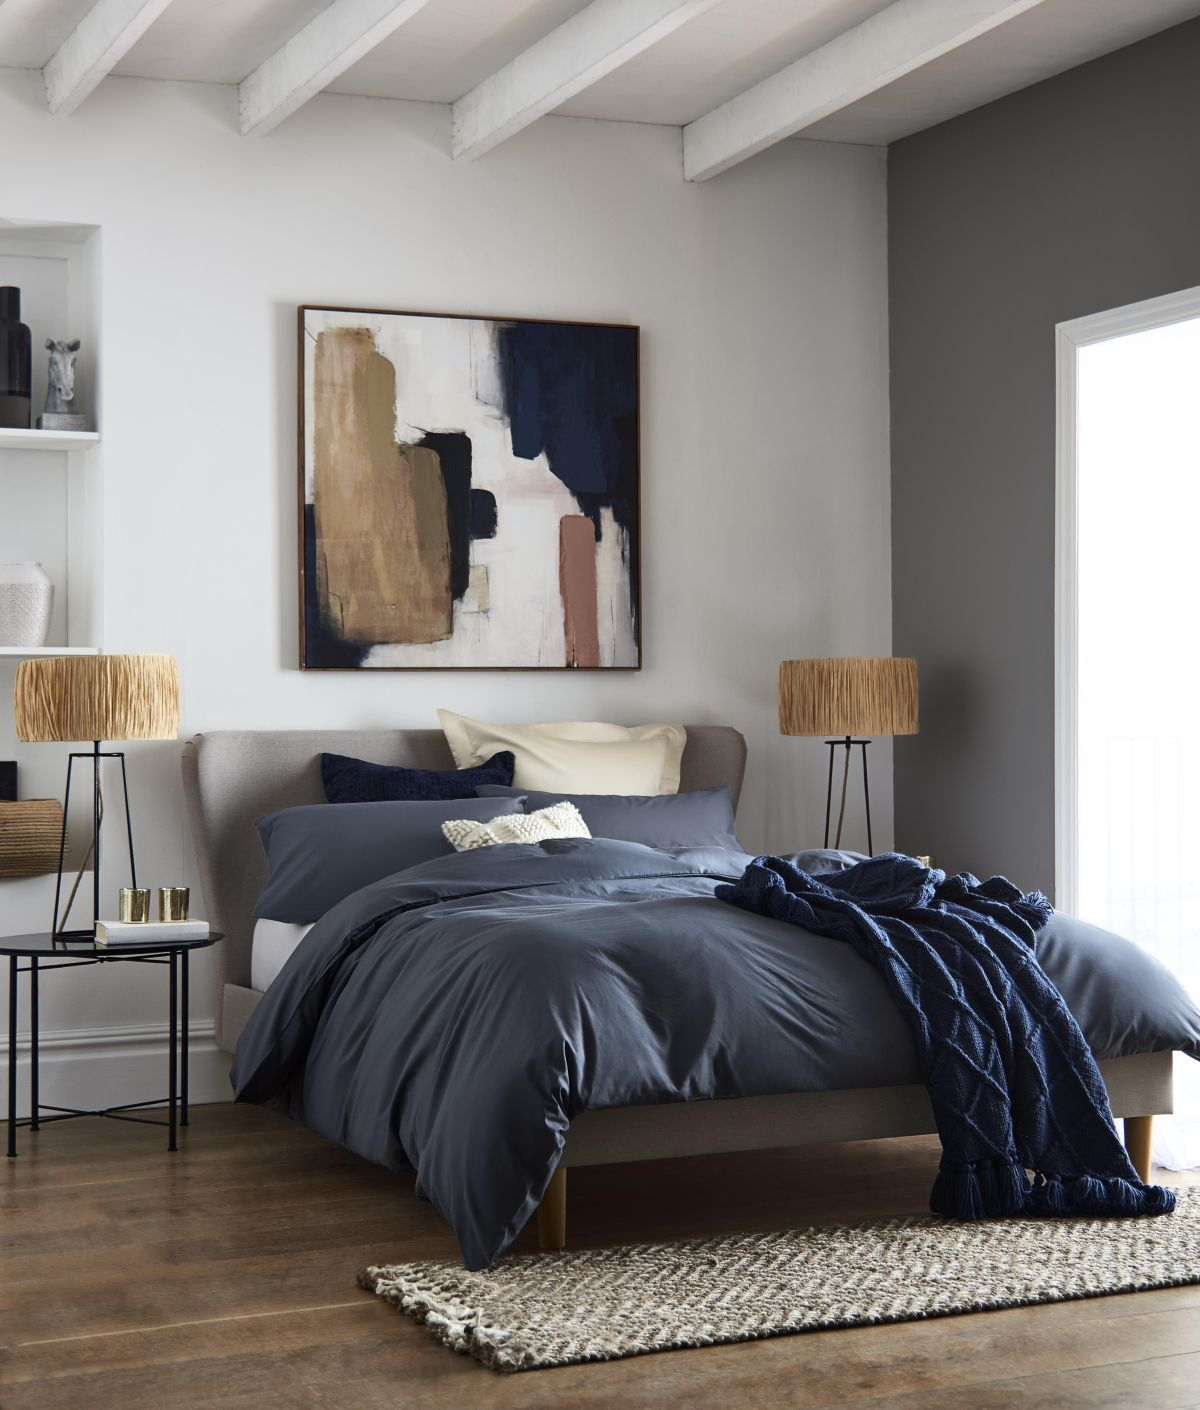 15 fabulous guest room ideas to make your guests feel welcome